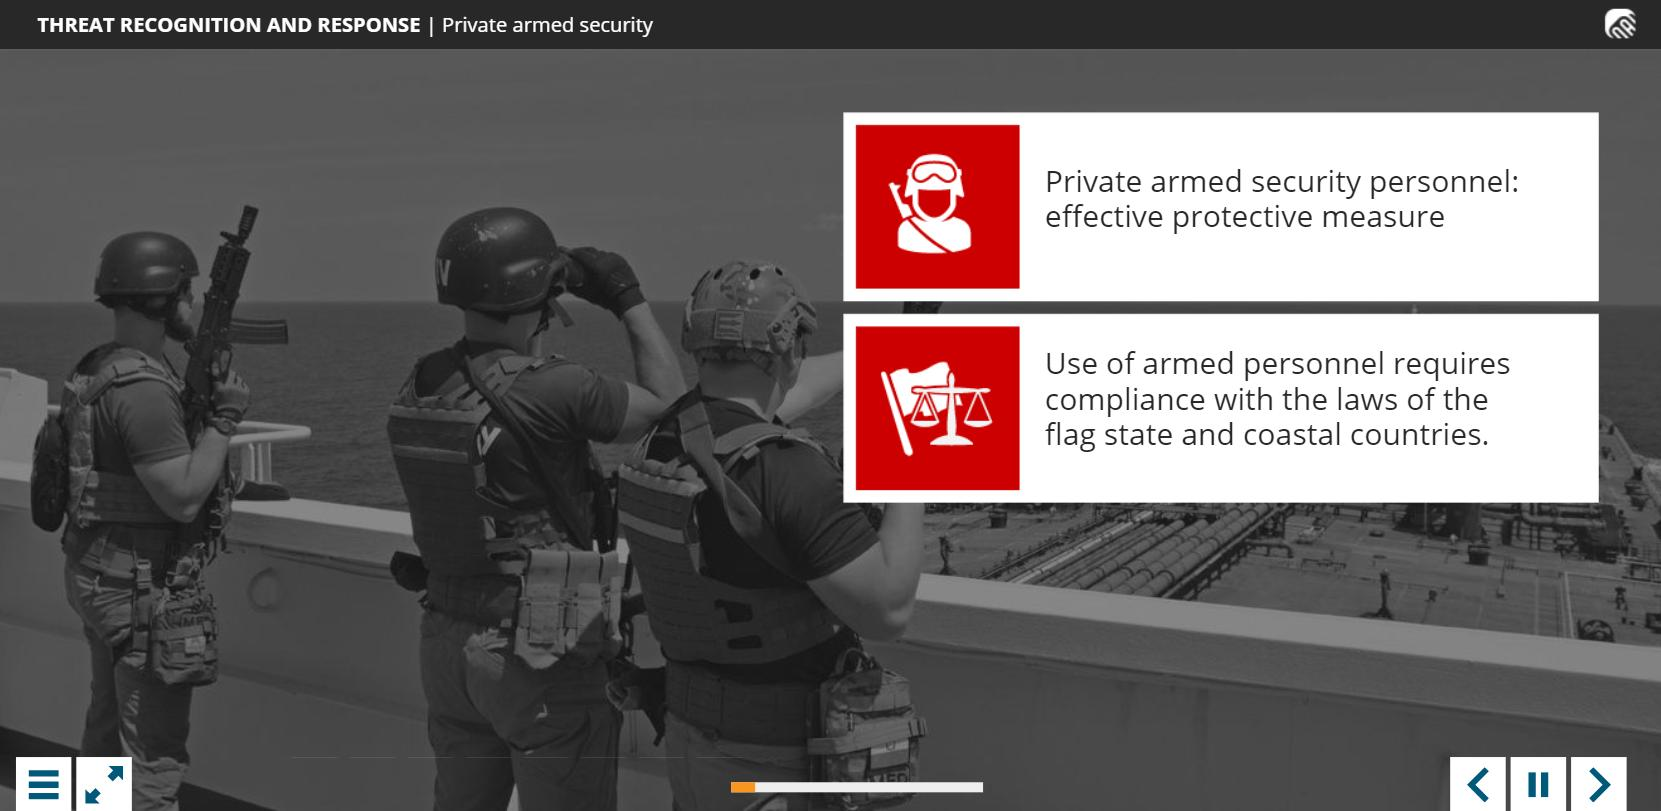 Piracy and Armed Robbery Training 4